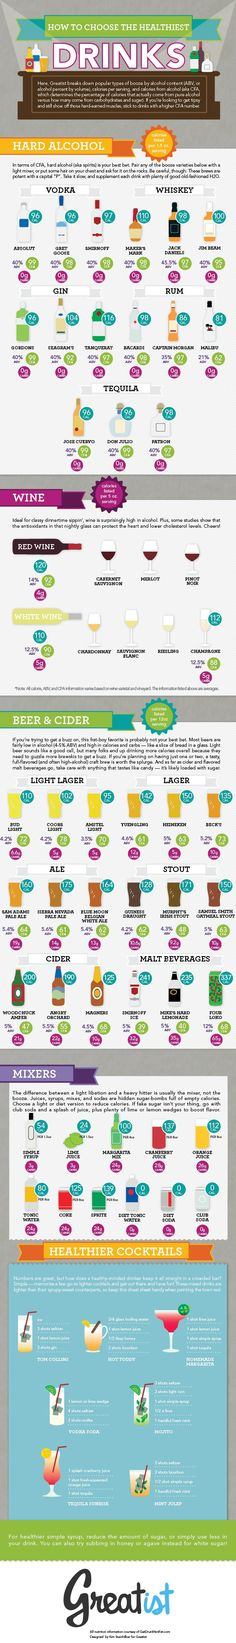 How to Choose the Healthiest Beer, Wine, and Cocktails [INFOGRAPHIC] Greatist